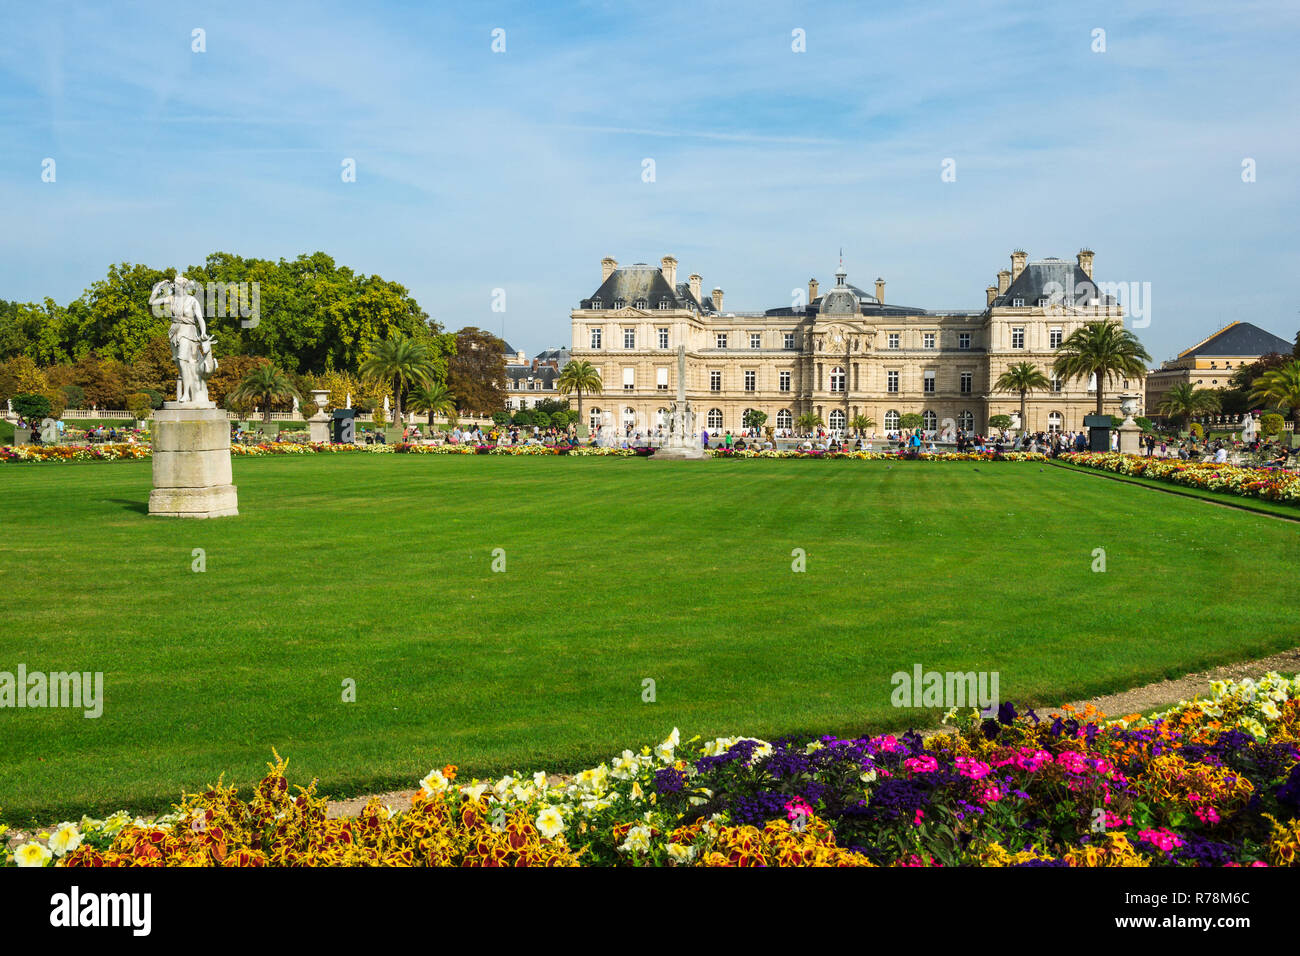 Luxembourg Gardens Paris France Stock Photos & Luxembourg ...